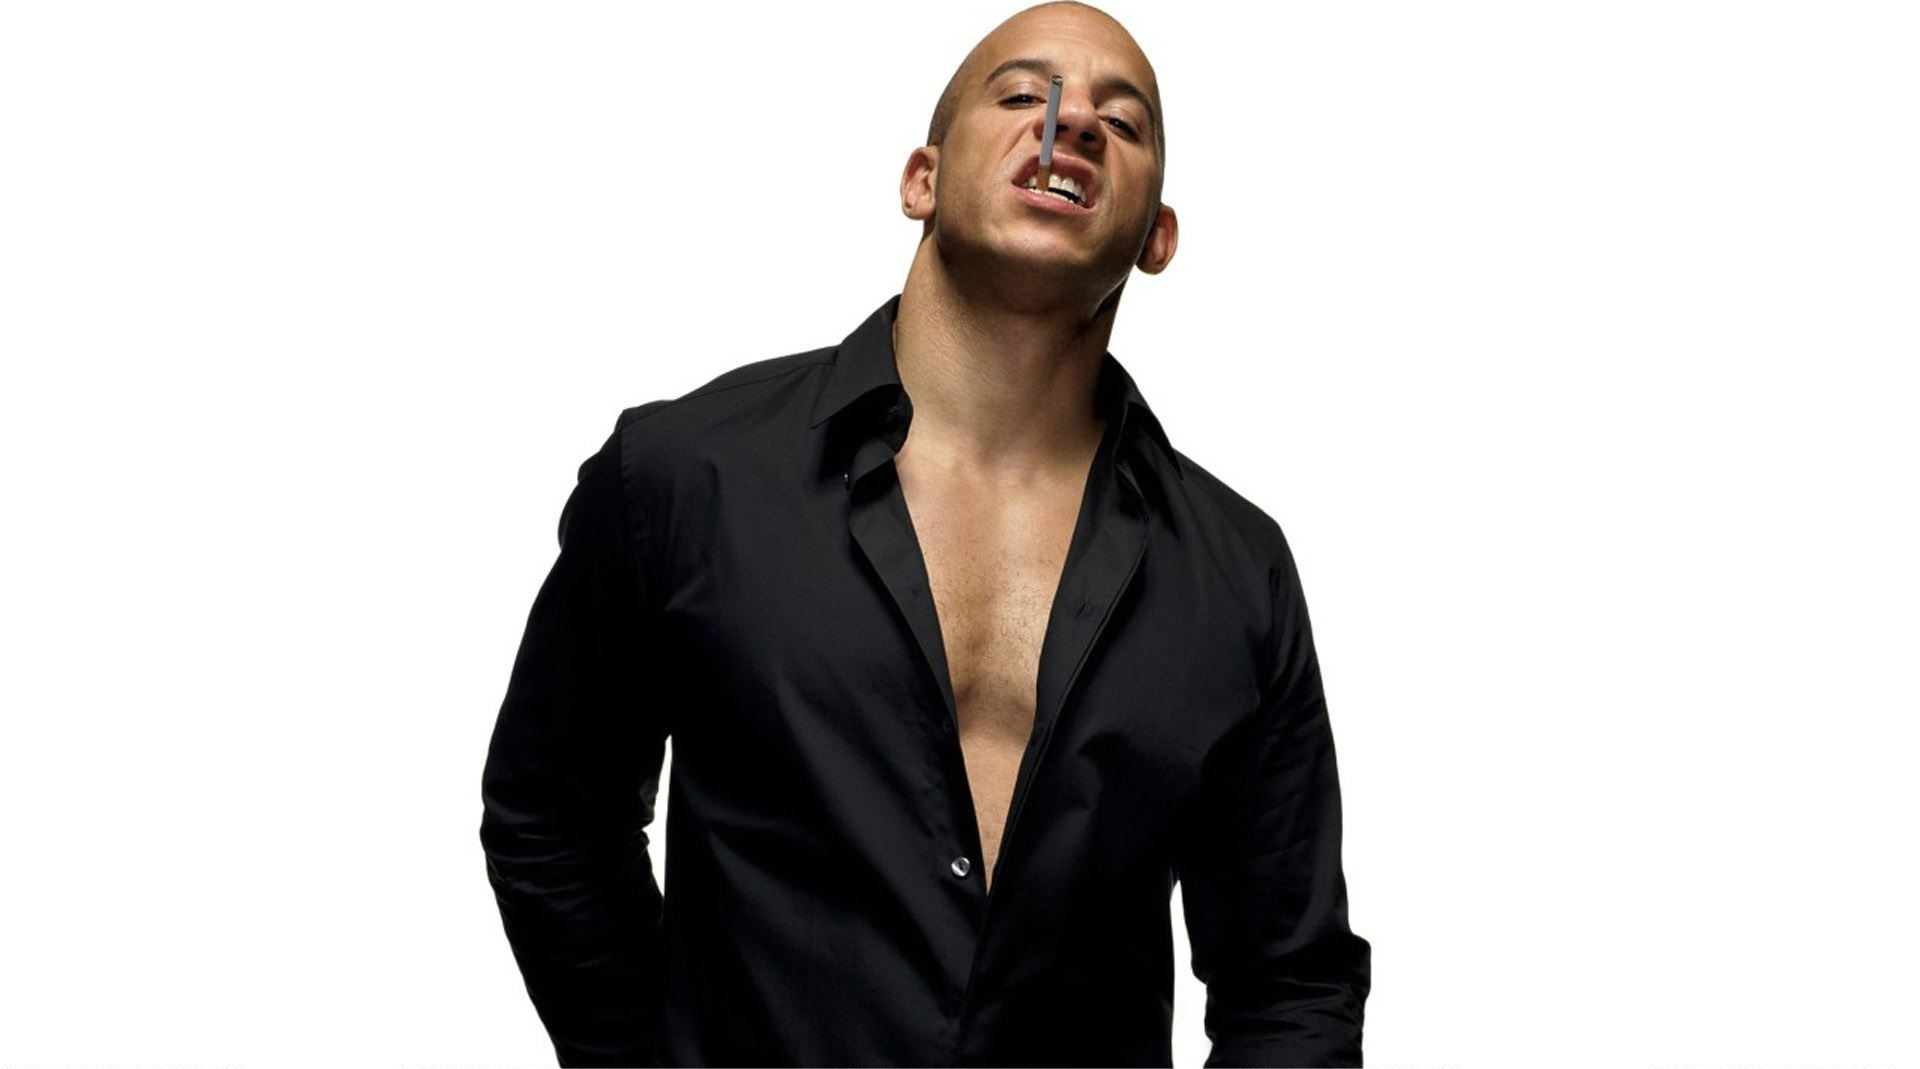 Vin Diesel High Quality Wallpapers